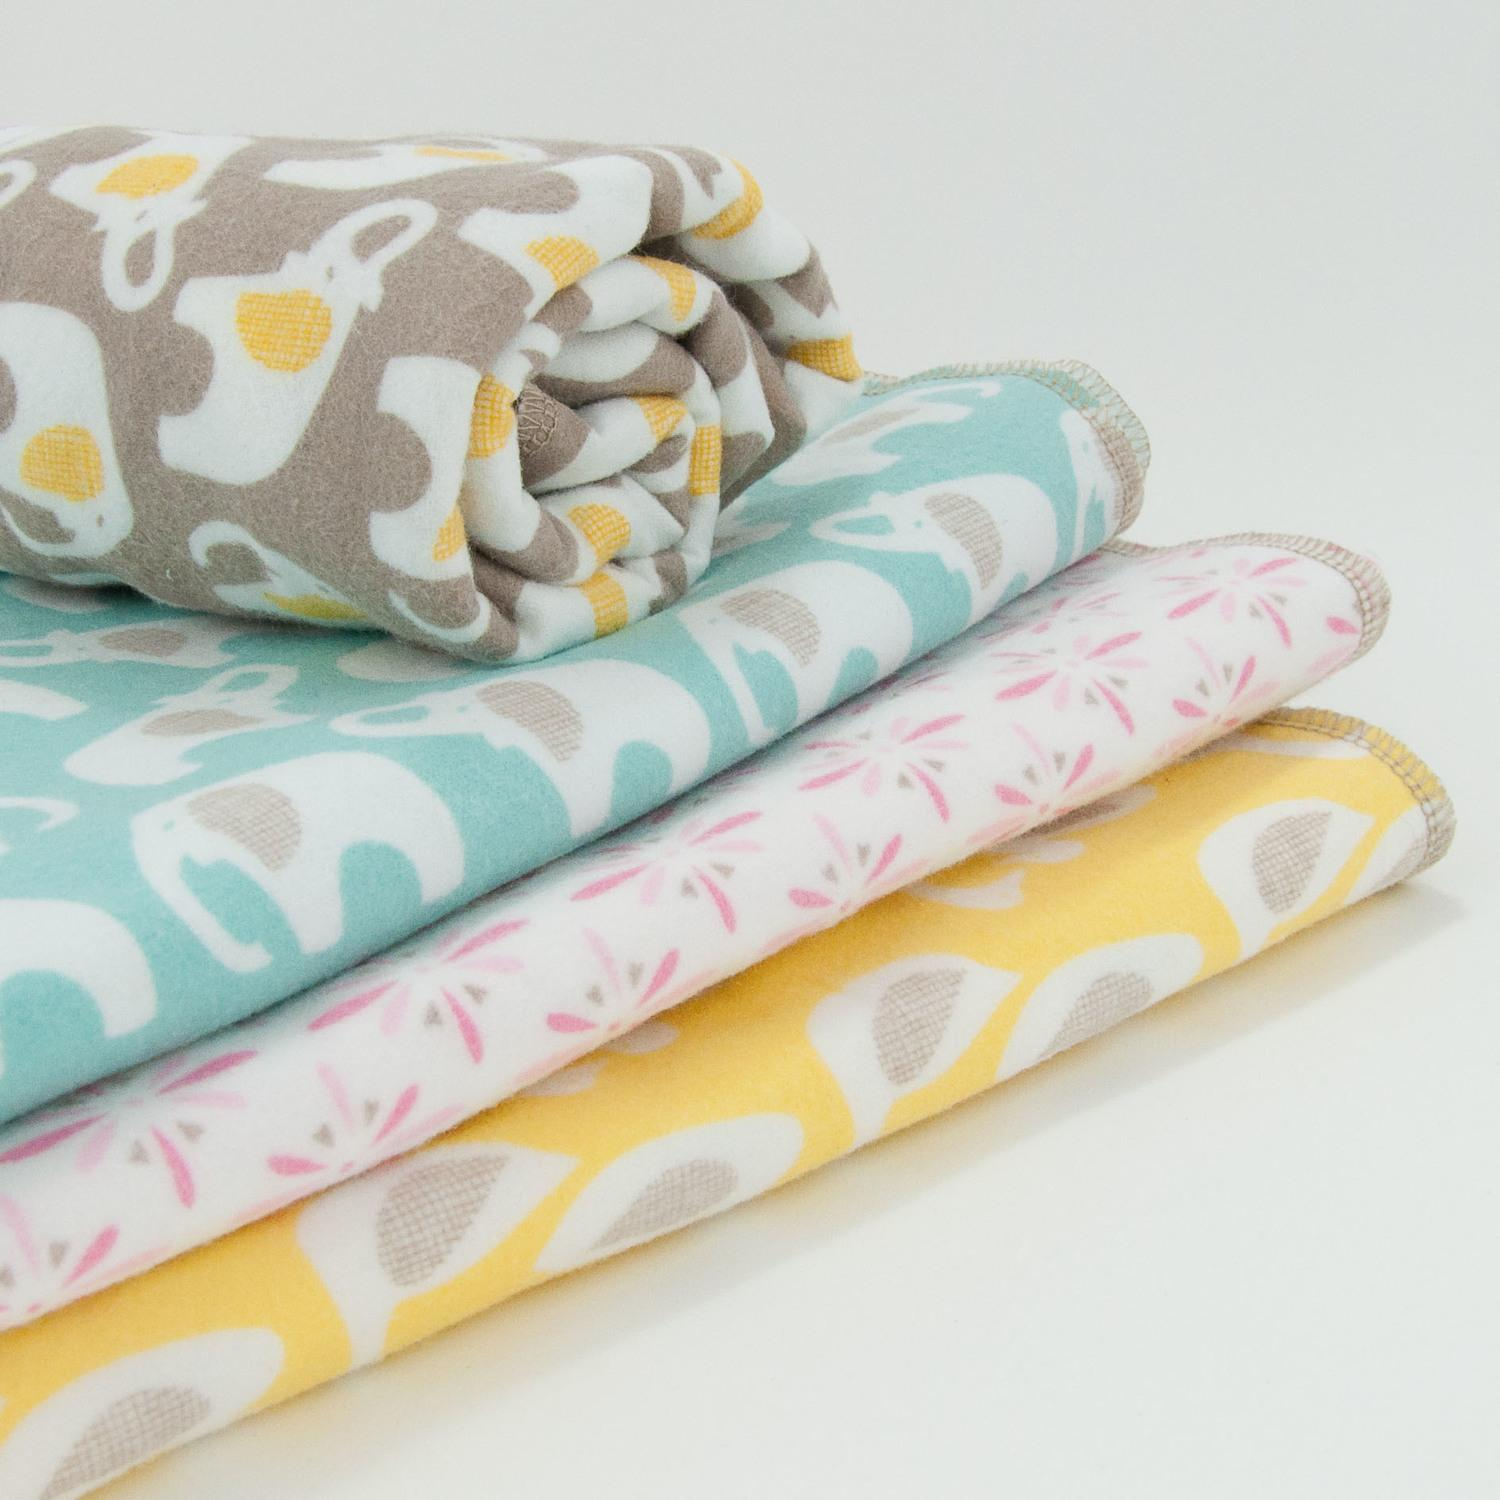 NEW Organic Swaddle Blanket Prints in Stock!